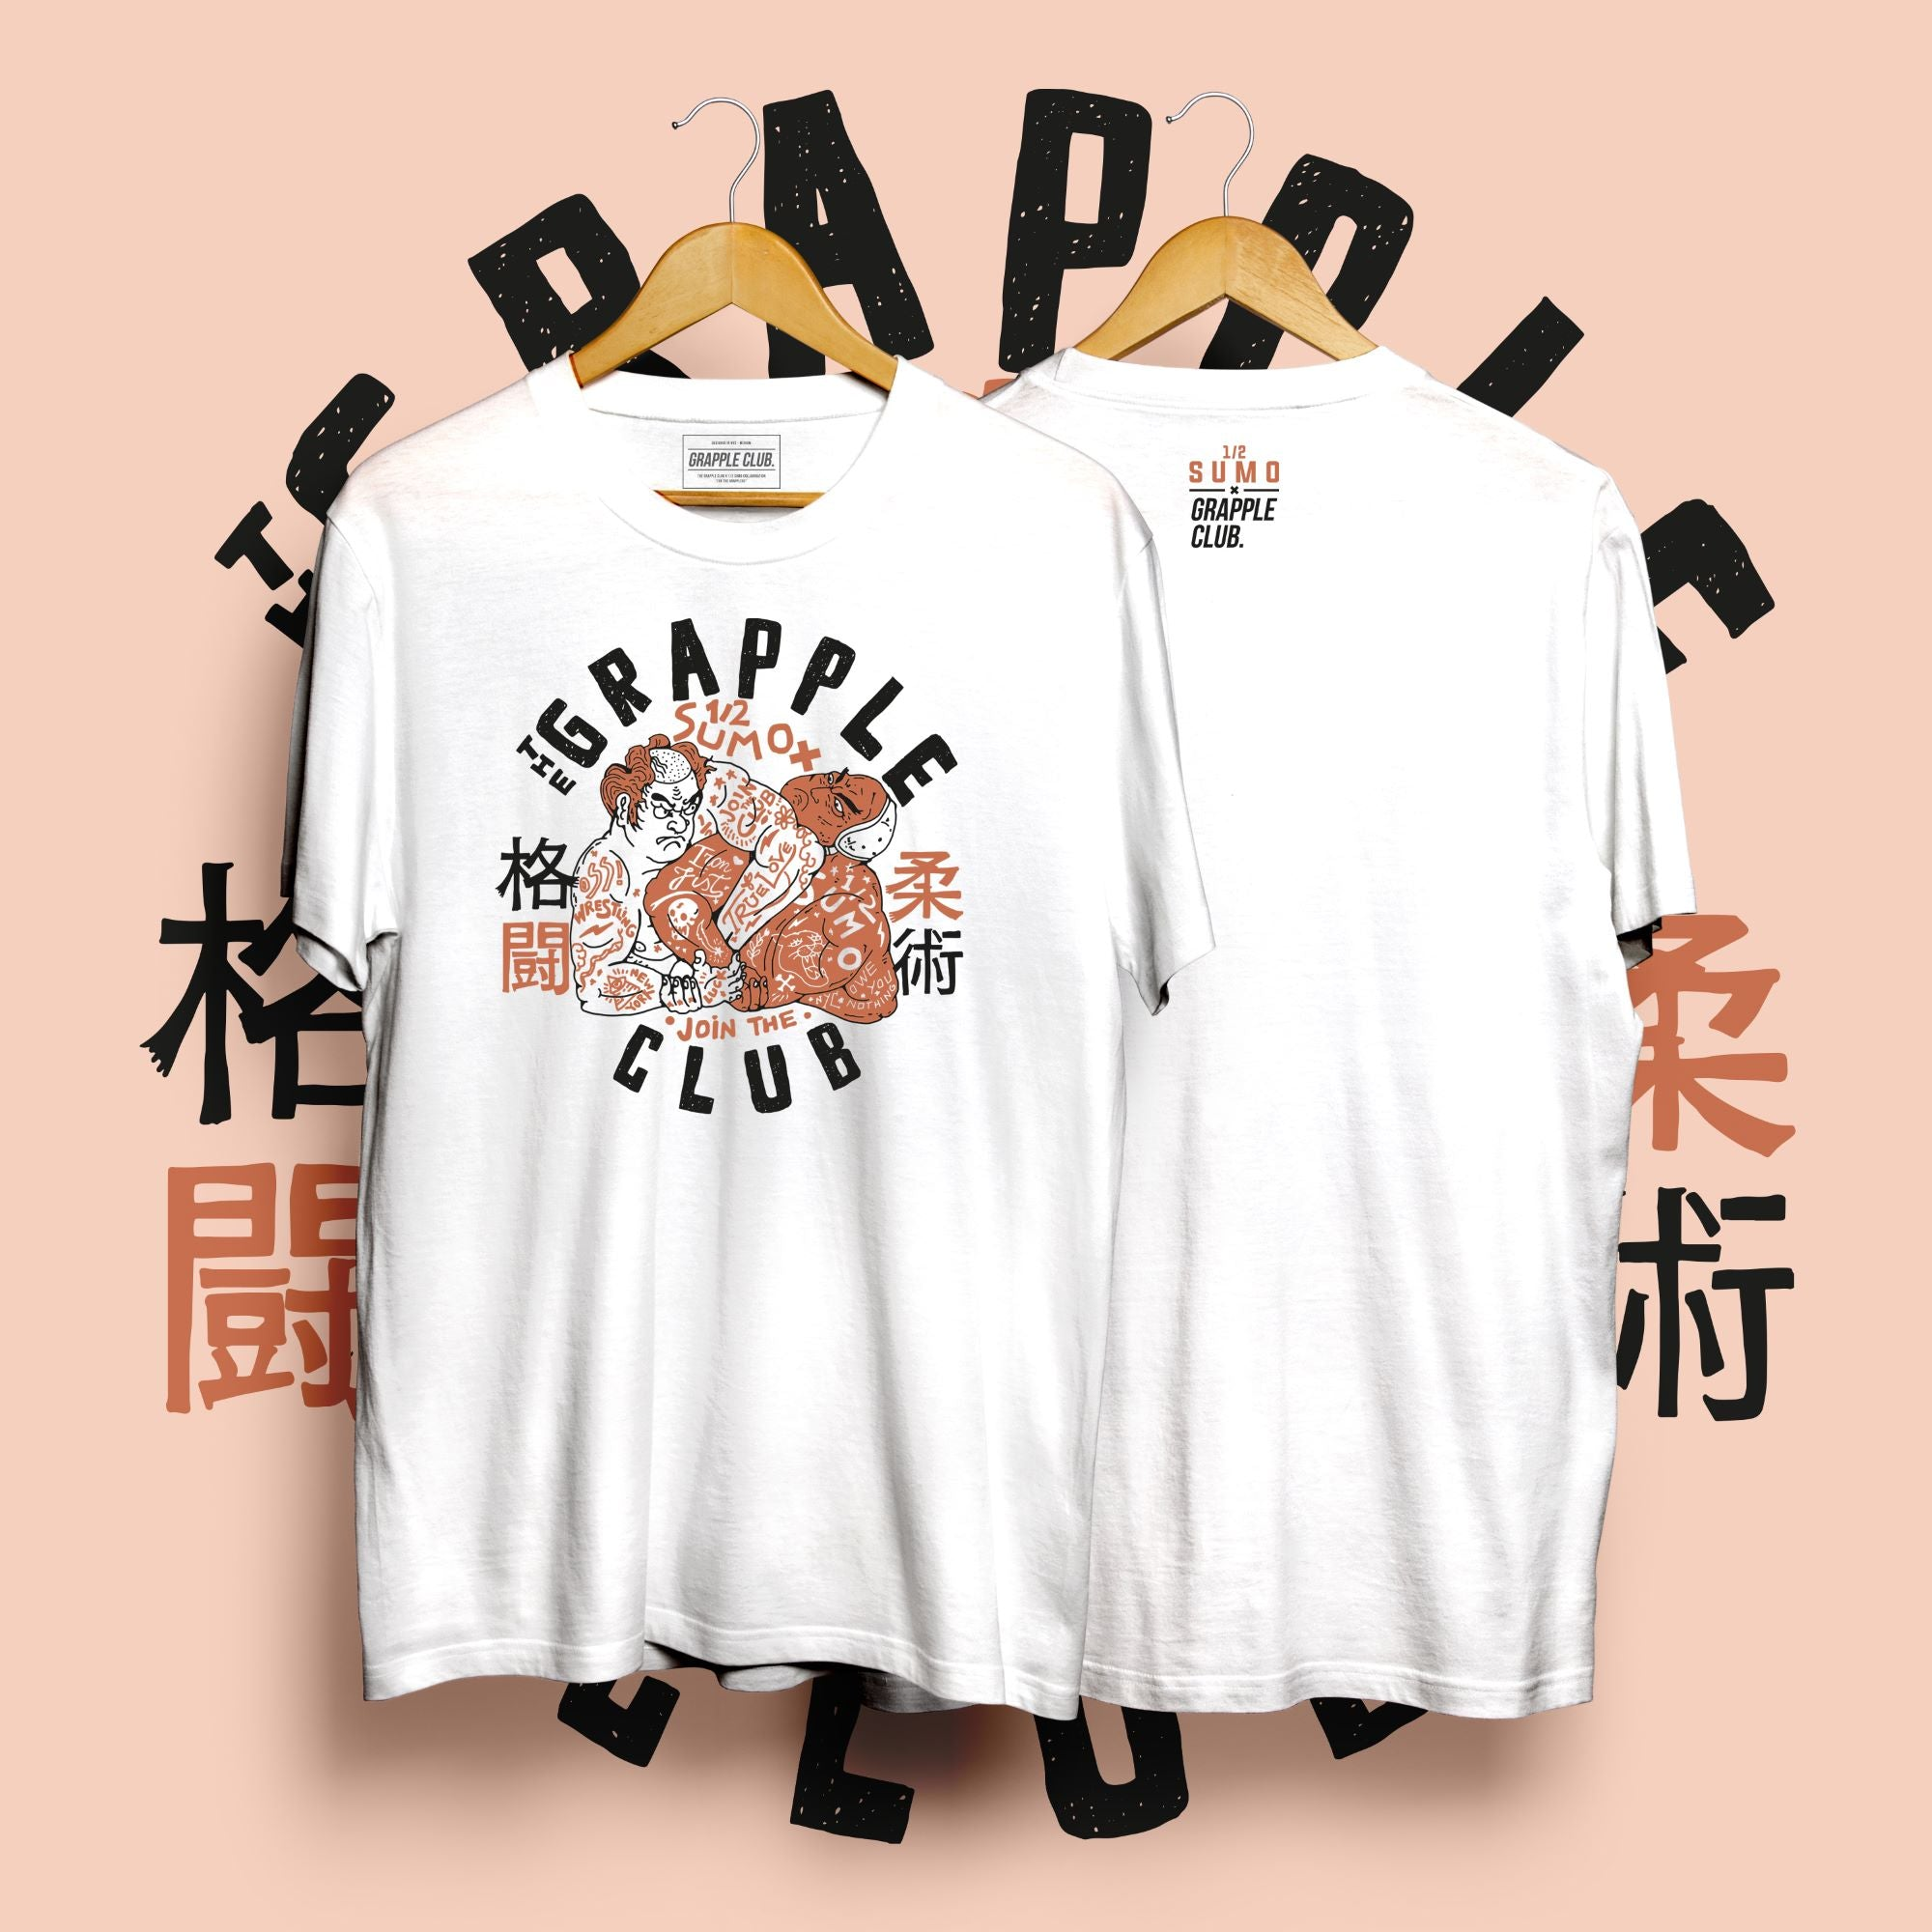 Half Sumo X Grapple Club - White T-Shirt on Hanger